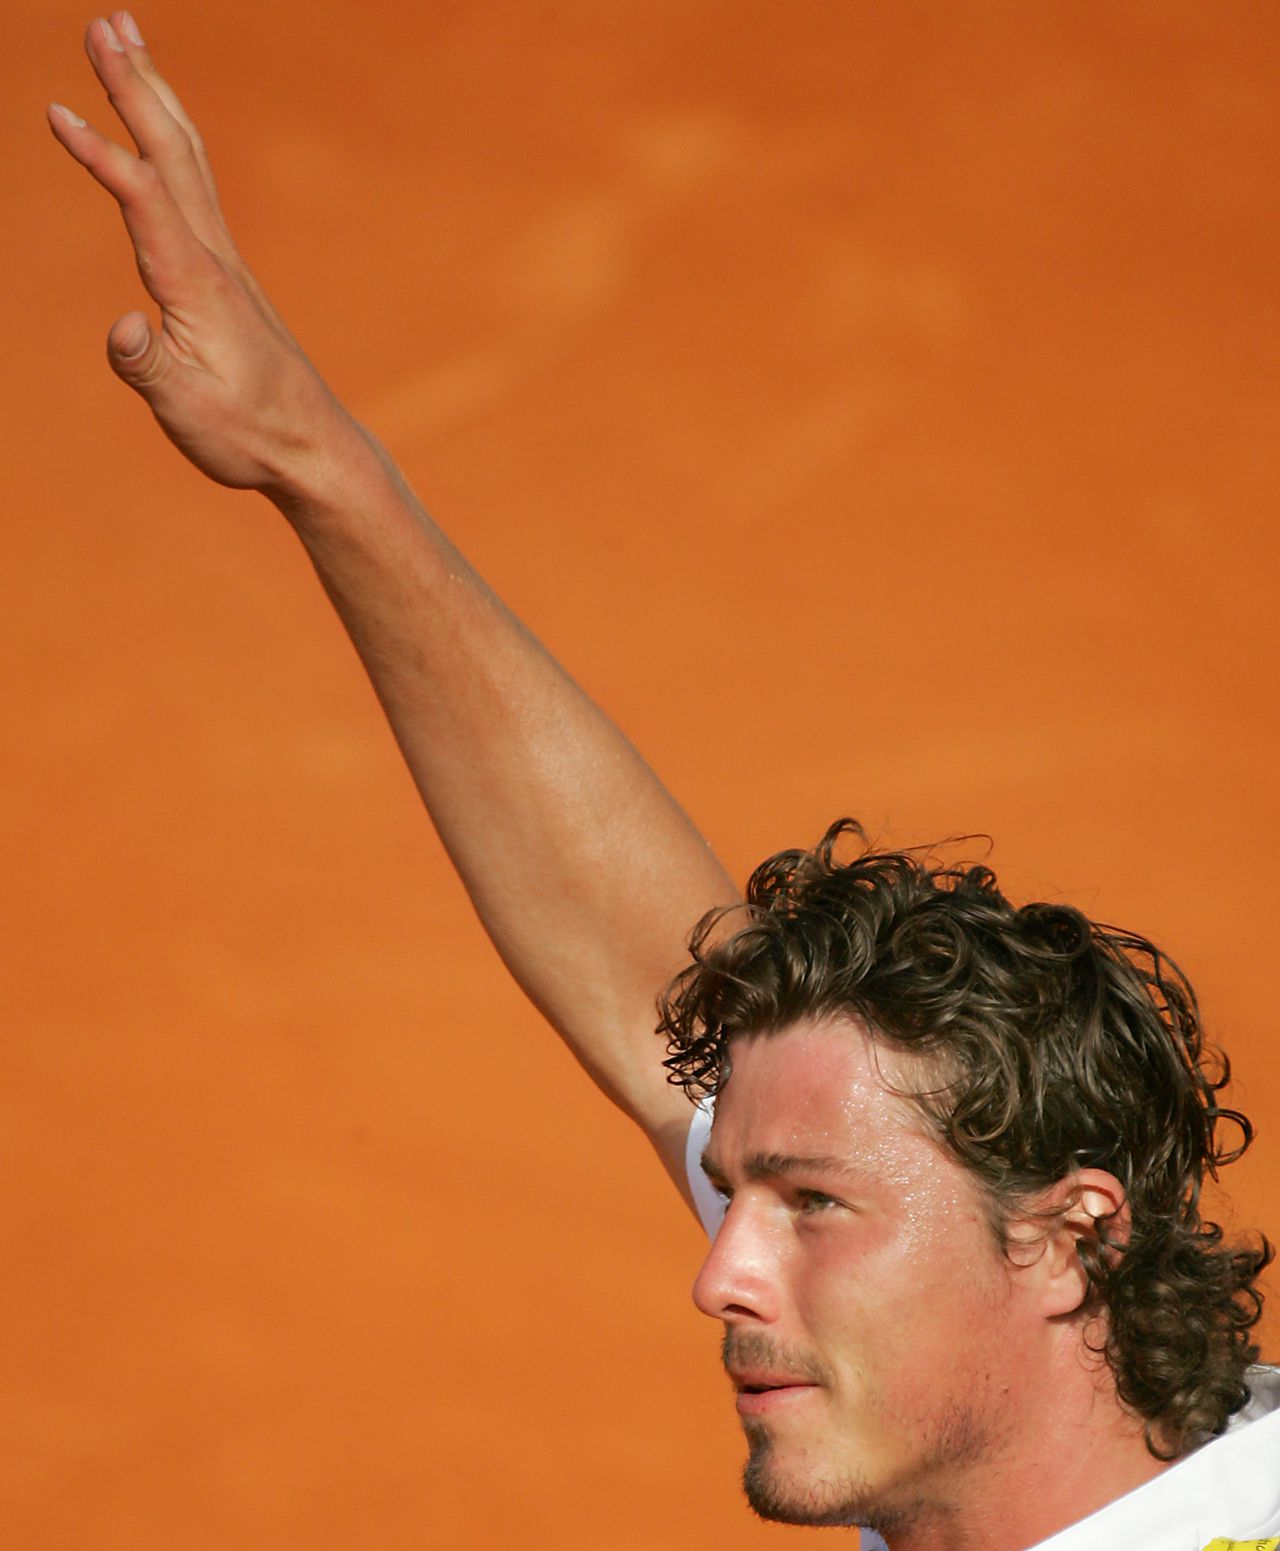 Marat Safin: 'Ik zou nooit met Federer willen ruilen. Zijn spel zit dicht tegen perfectie aan. Maar perfectie is ook saai.' Foto AFP Marat Safin of Russia waves to the public at the end of the third round match of the tennis French Open at Roland Garros against Juan Carlos Ferrero of Spain, 28 May 2005 in Paris. Saffin won 7-6(5), 7-5, 1-6, 7-6(2). AFP PHOTO CHRISTOPHE SIMON